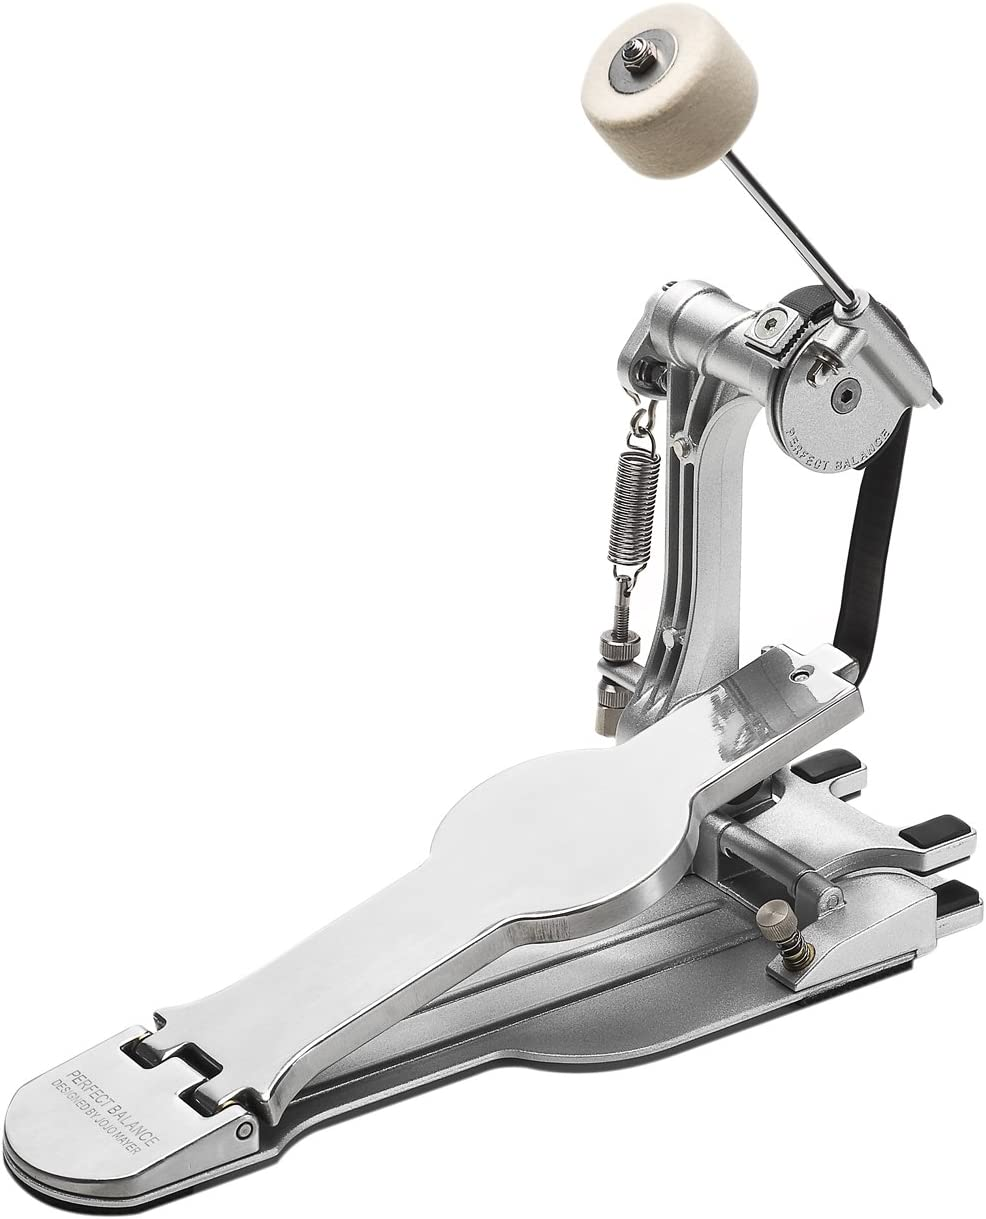 Sonor Drums Perfect Balance Pedal By Jojo Mayer